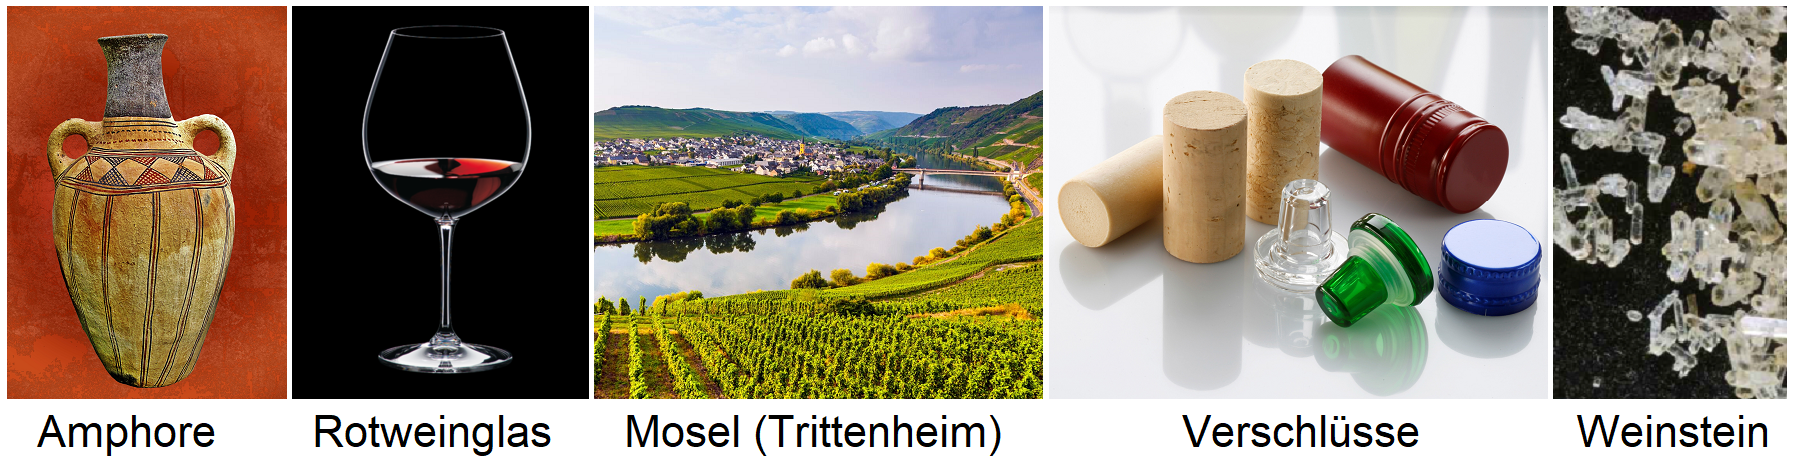 Weinglossar Tags - amphora, red wine glass, Moselle (Trittenheim), closures, tartar